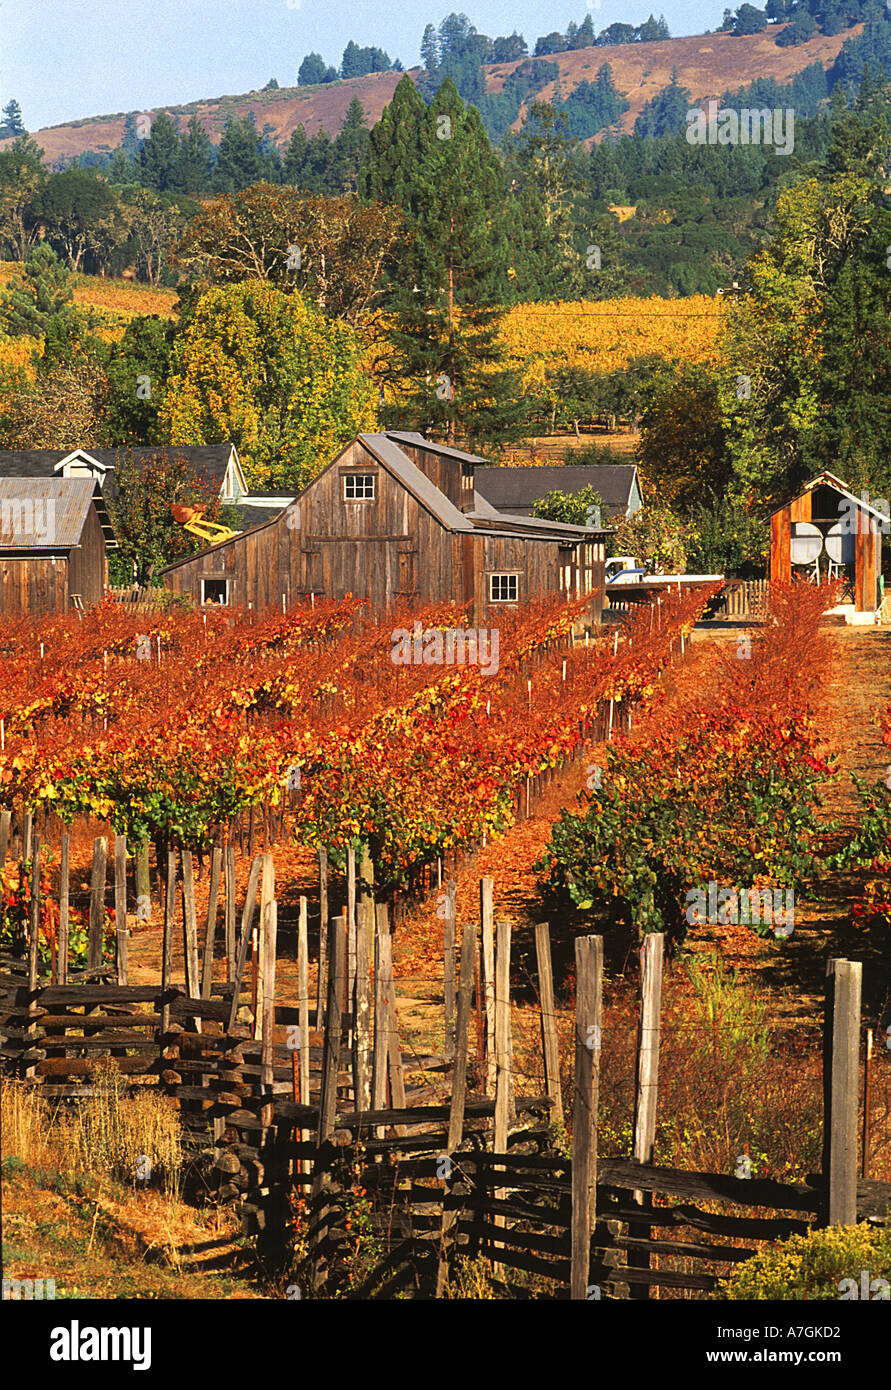 USA, California, Anderson Valley, wine country, fall color in vineyards and wineries - Stock Image